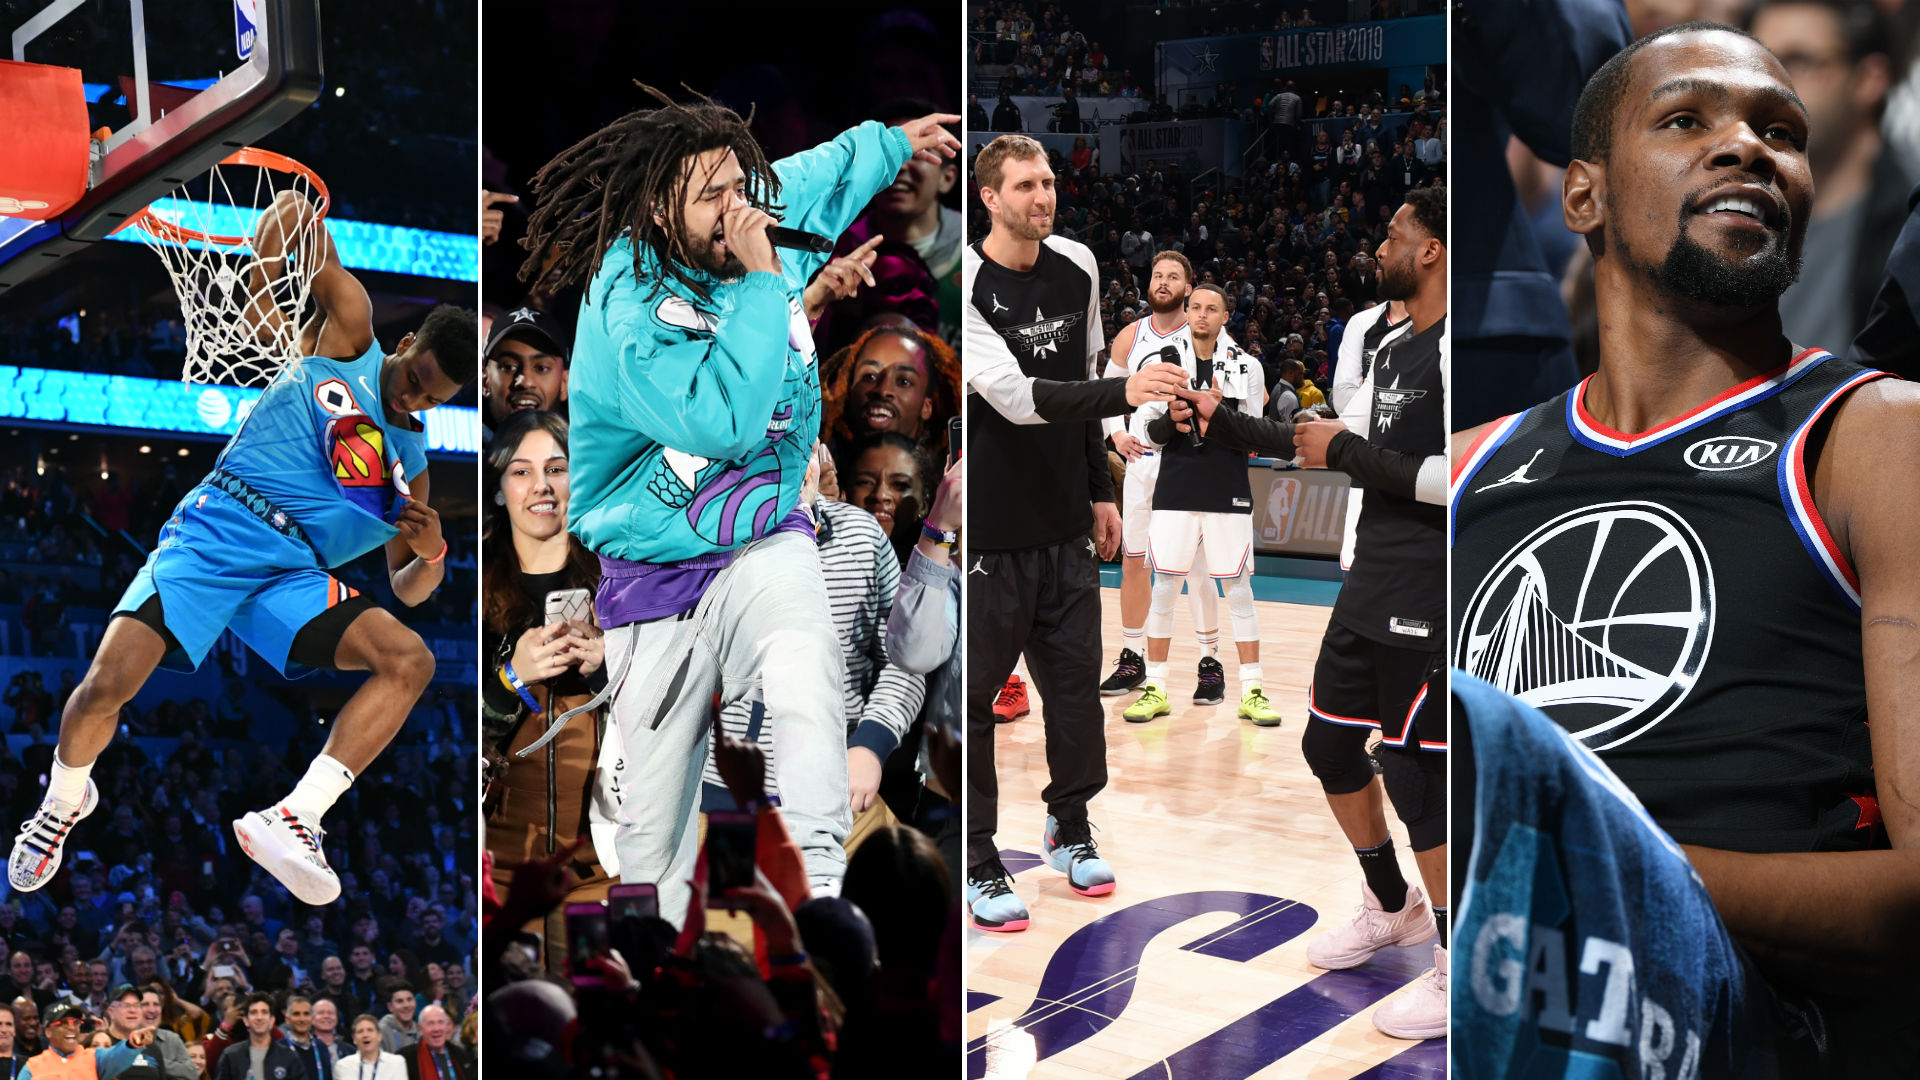 5dcb7f67539 Recapping standout moments from NBA All-Star 2019 weekend   NBA.com